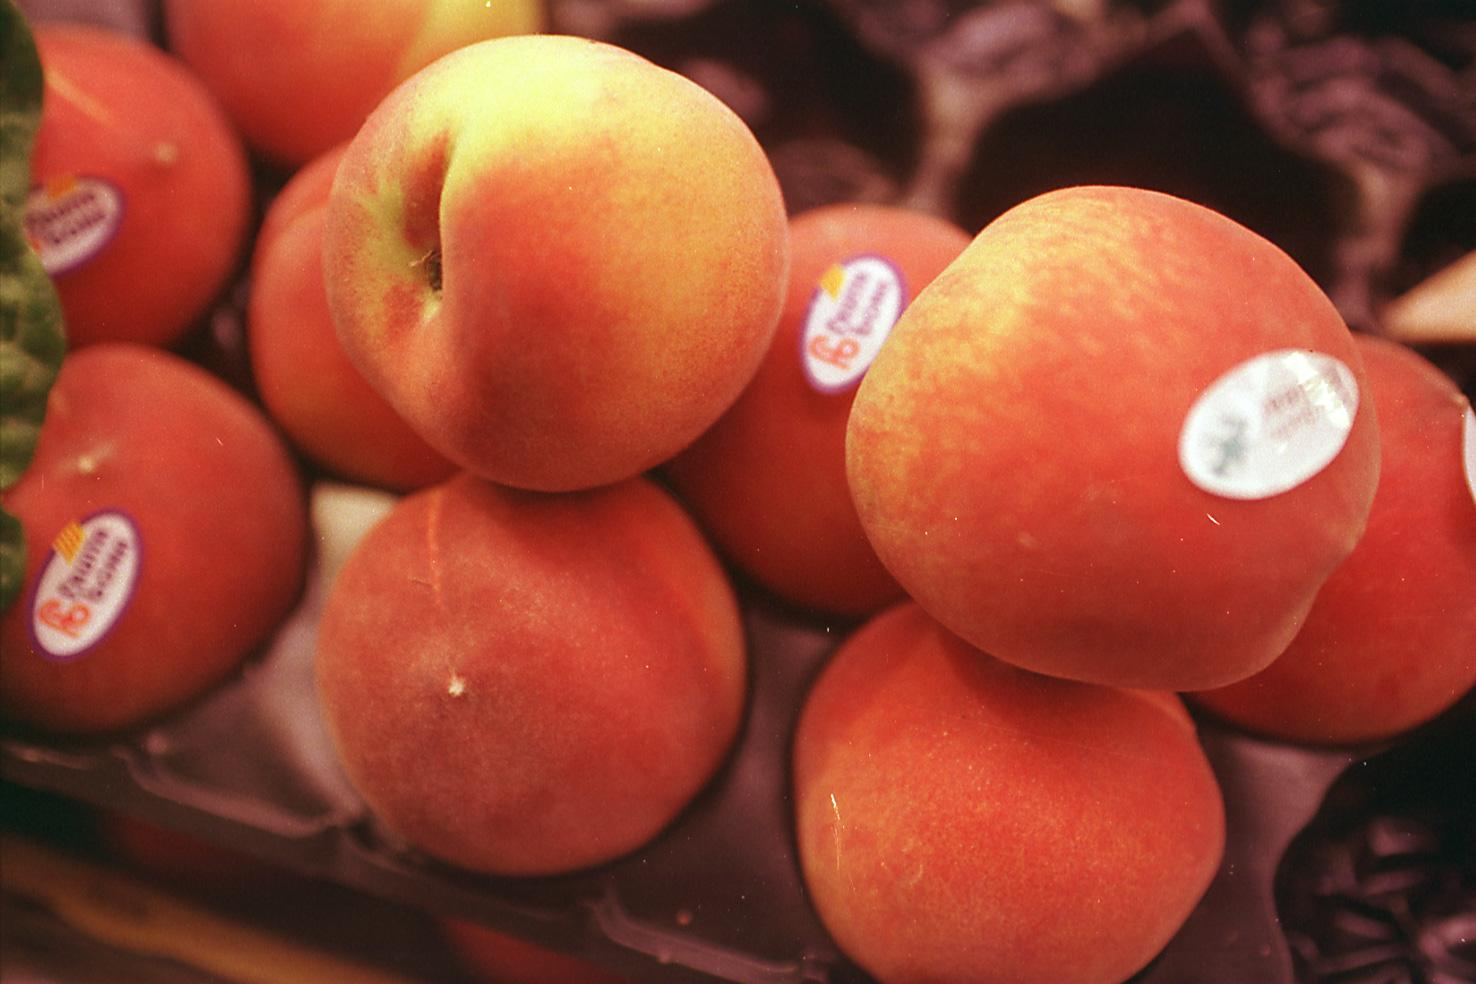 The peach is one of the most sensual fruits